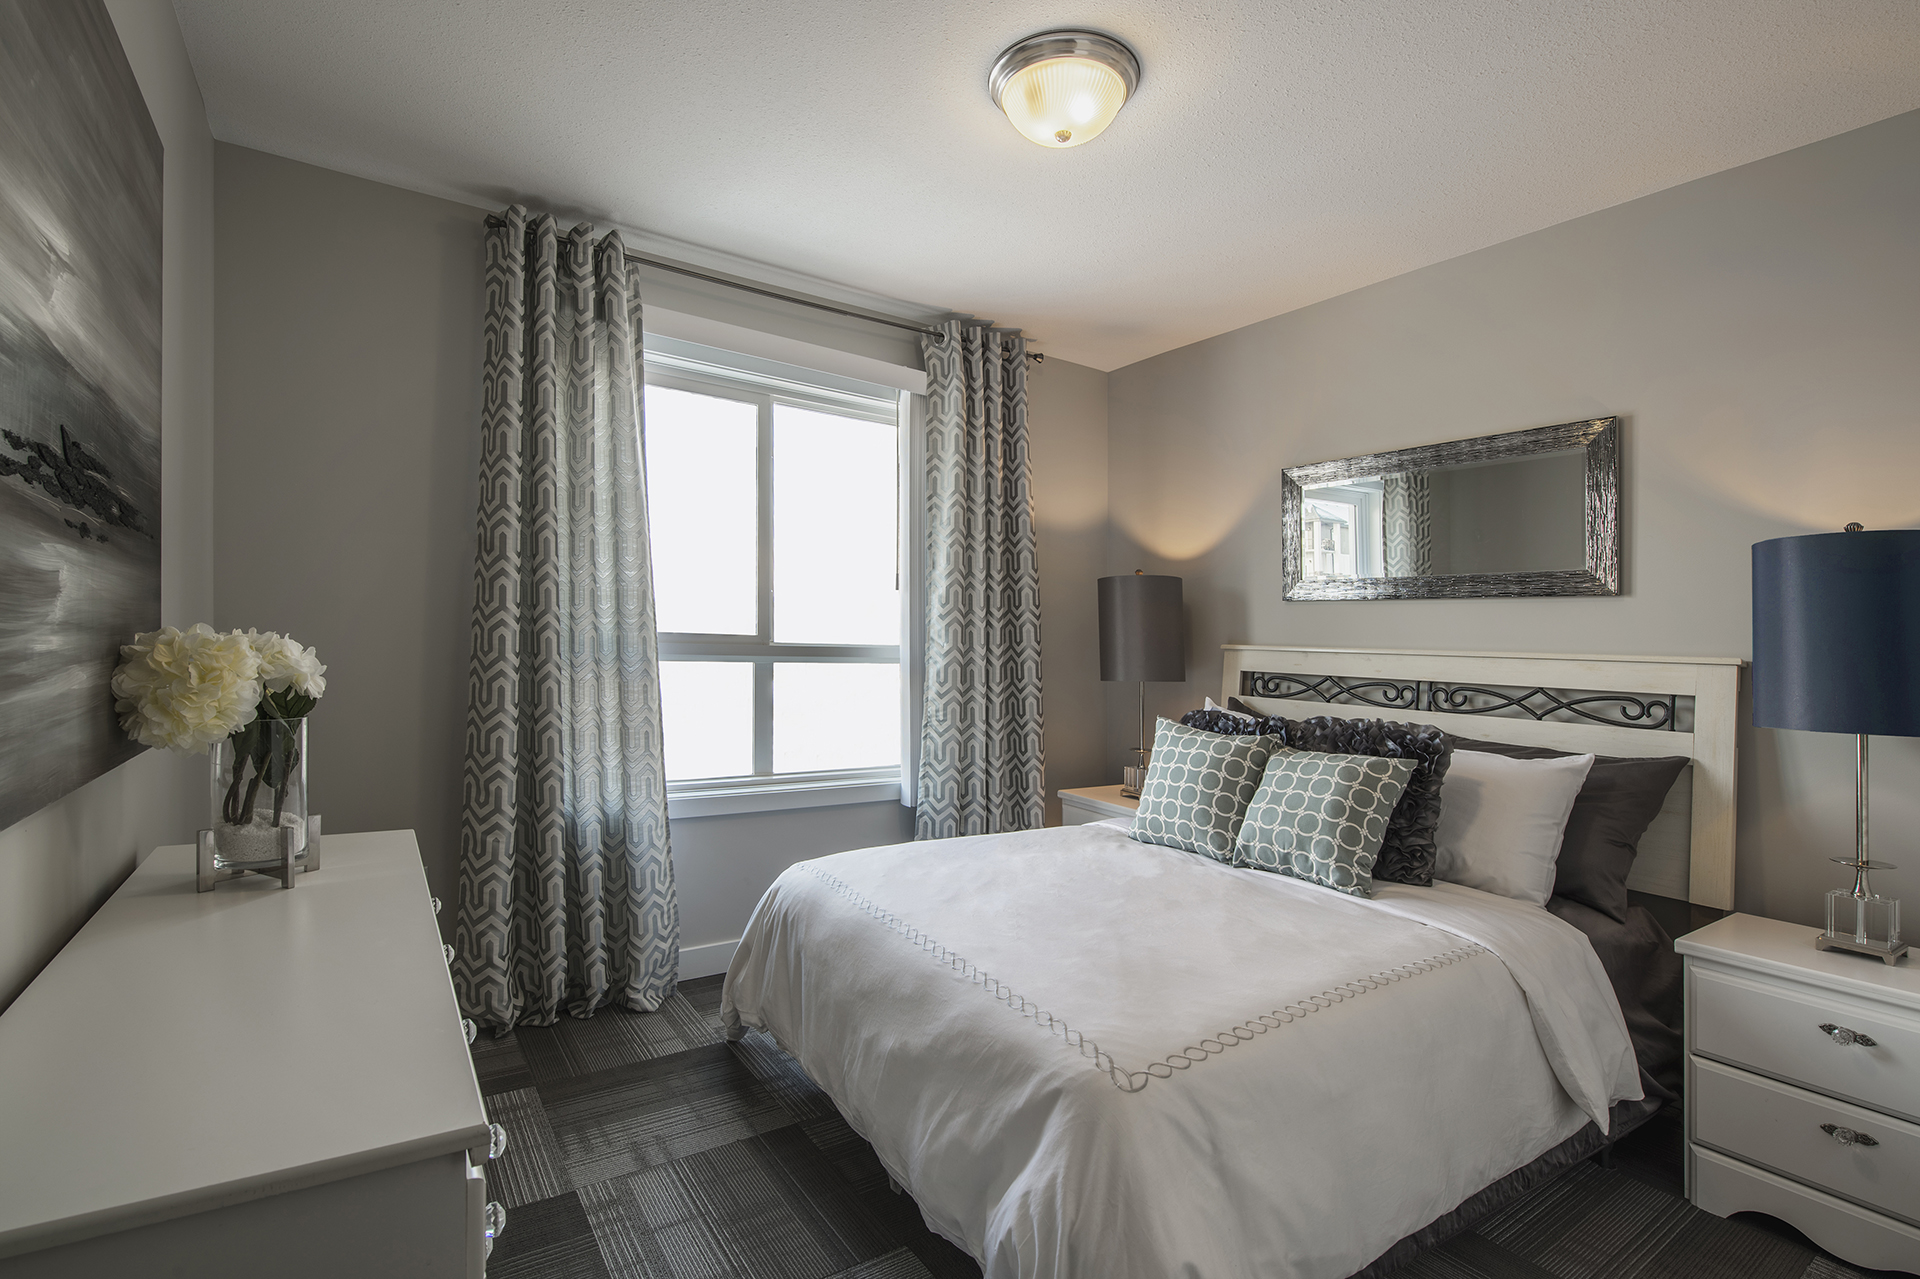 Apartment Rentals in WinnipegAddison Square